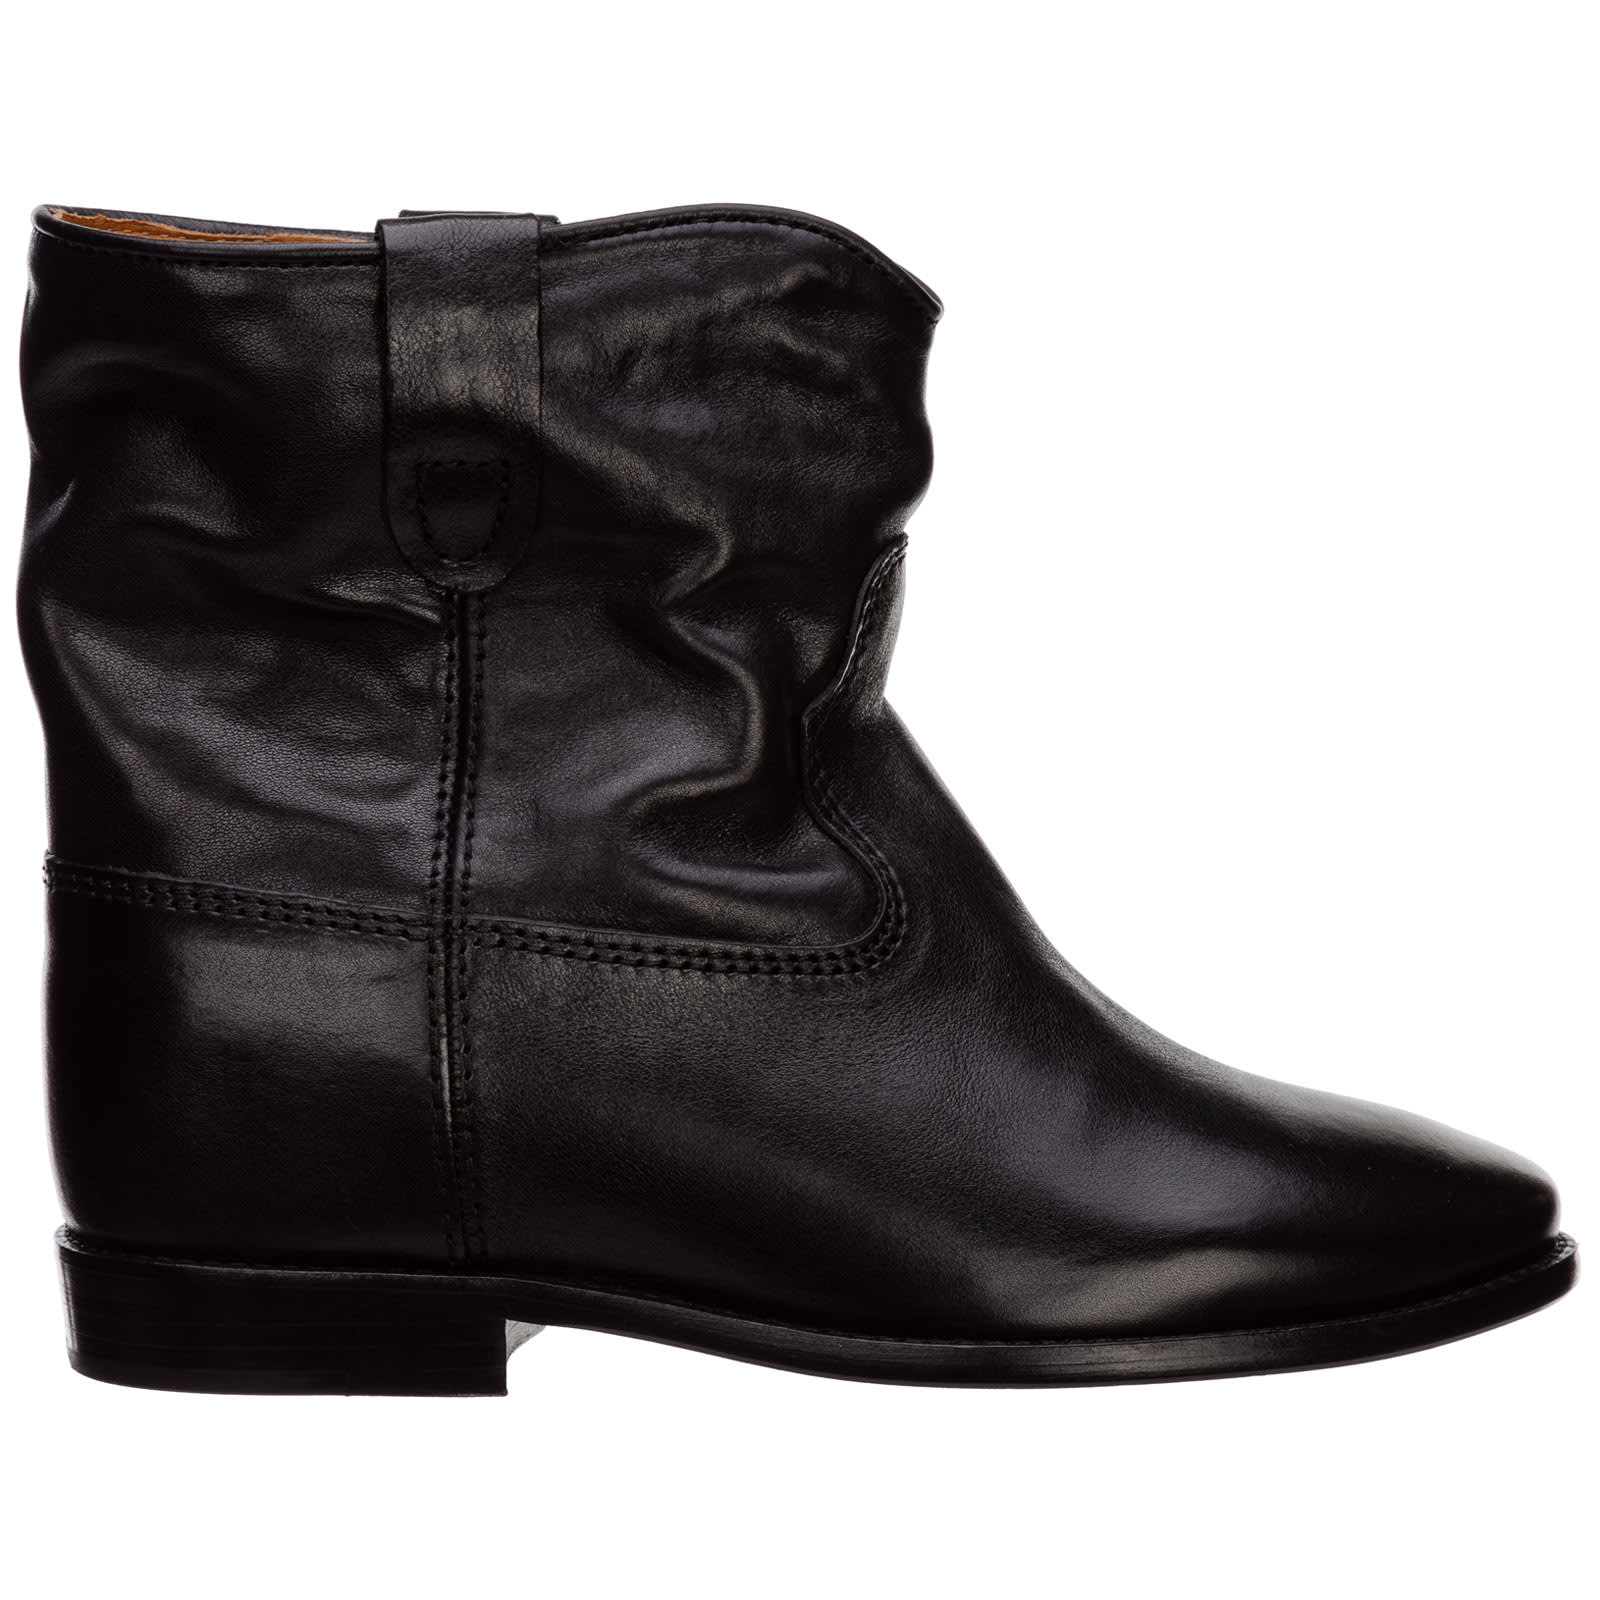 Buy Isabel Marant Cluster Ankle Boots online, shop Isabel Marant shoes with free shipping